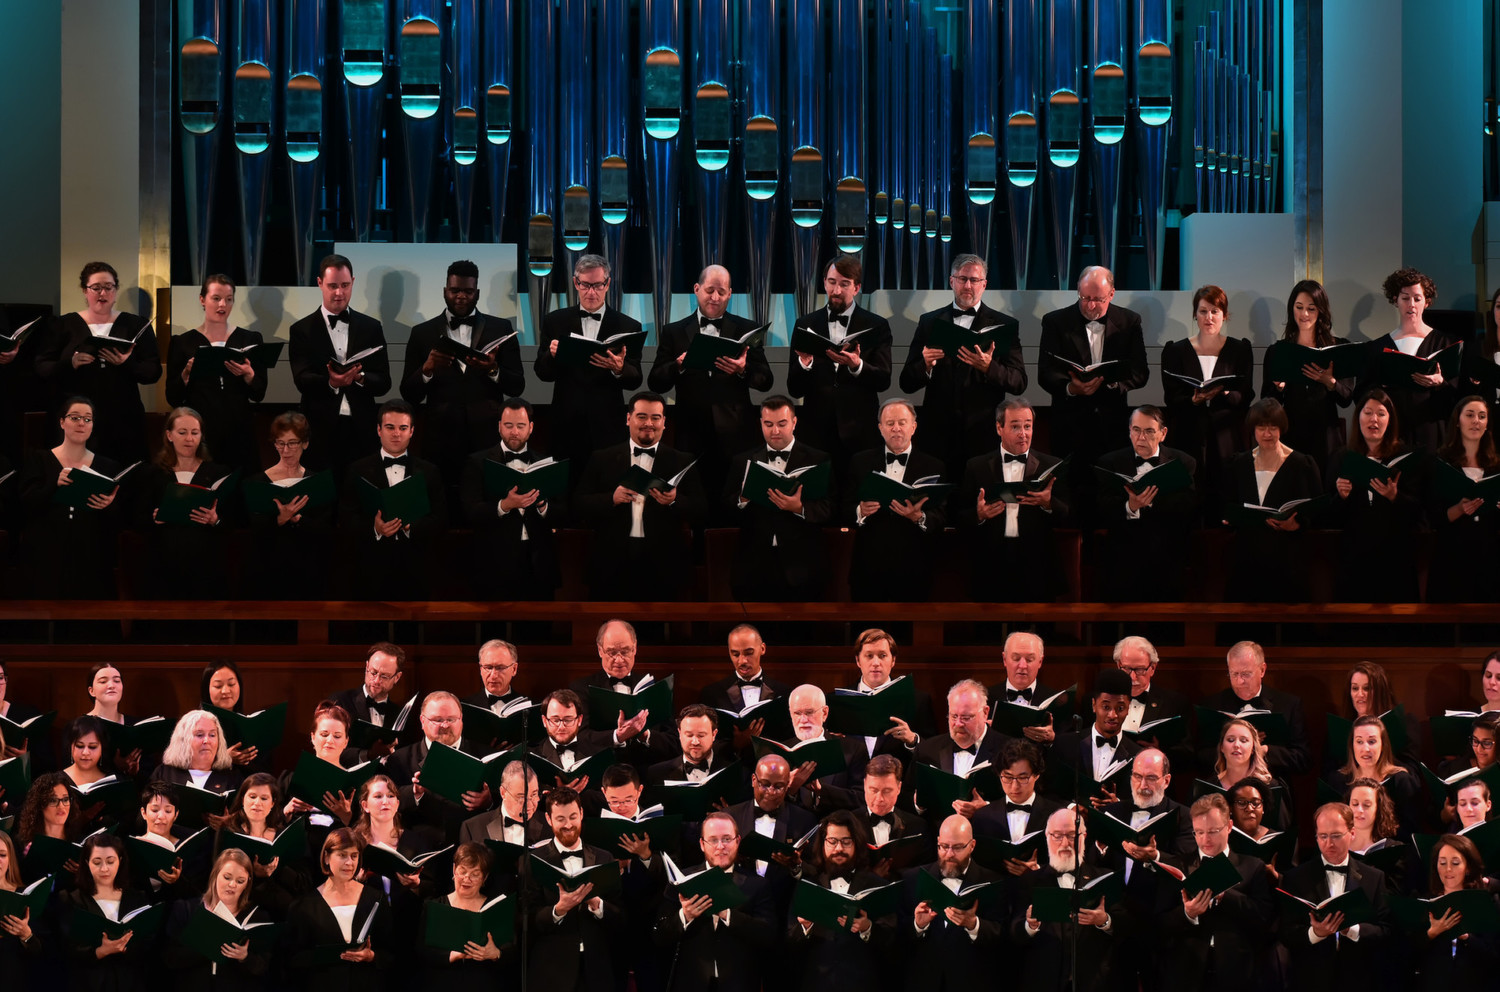 BWW Review: The Washington Chorus Gives a Joyous St. Patrick's Day Concert